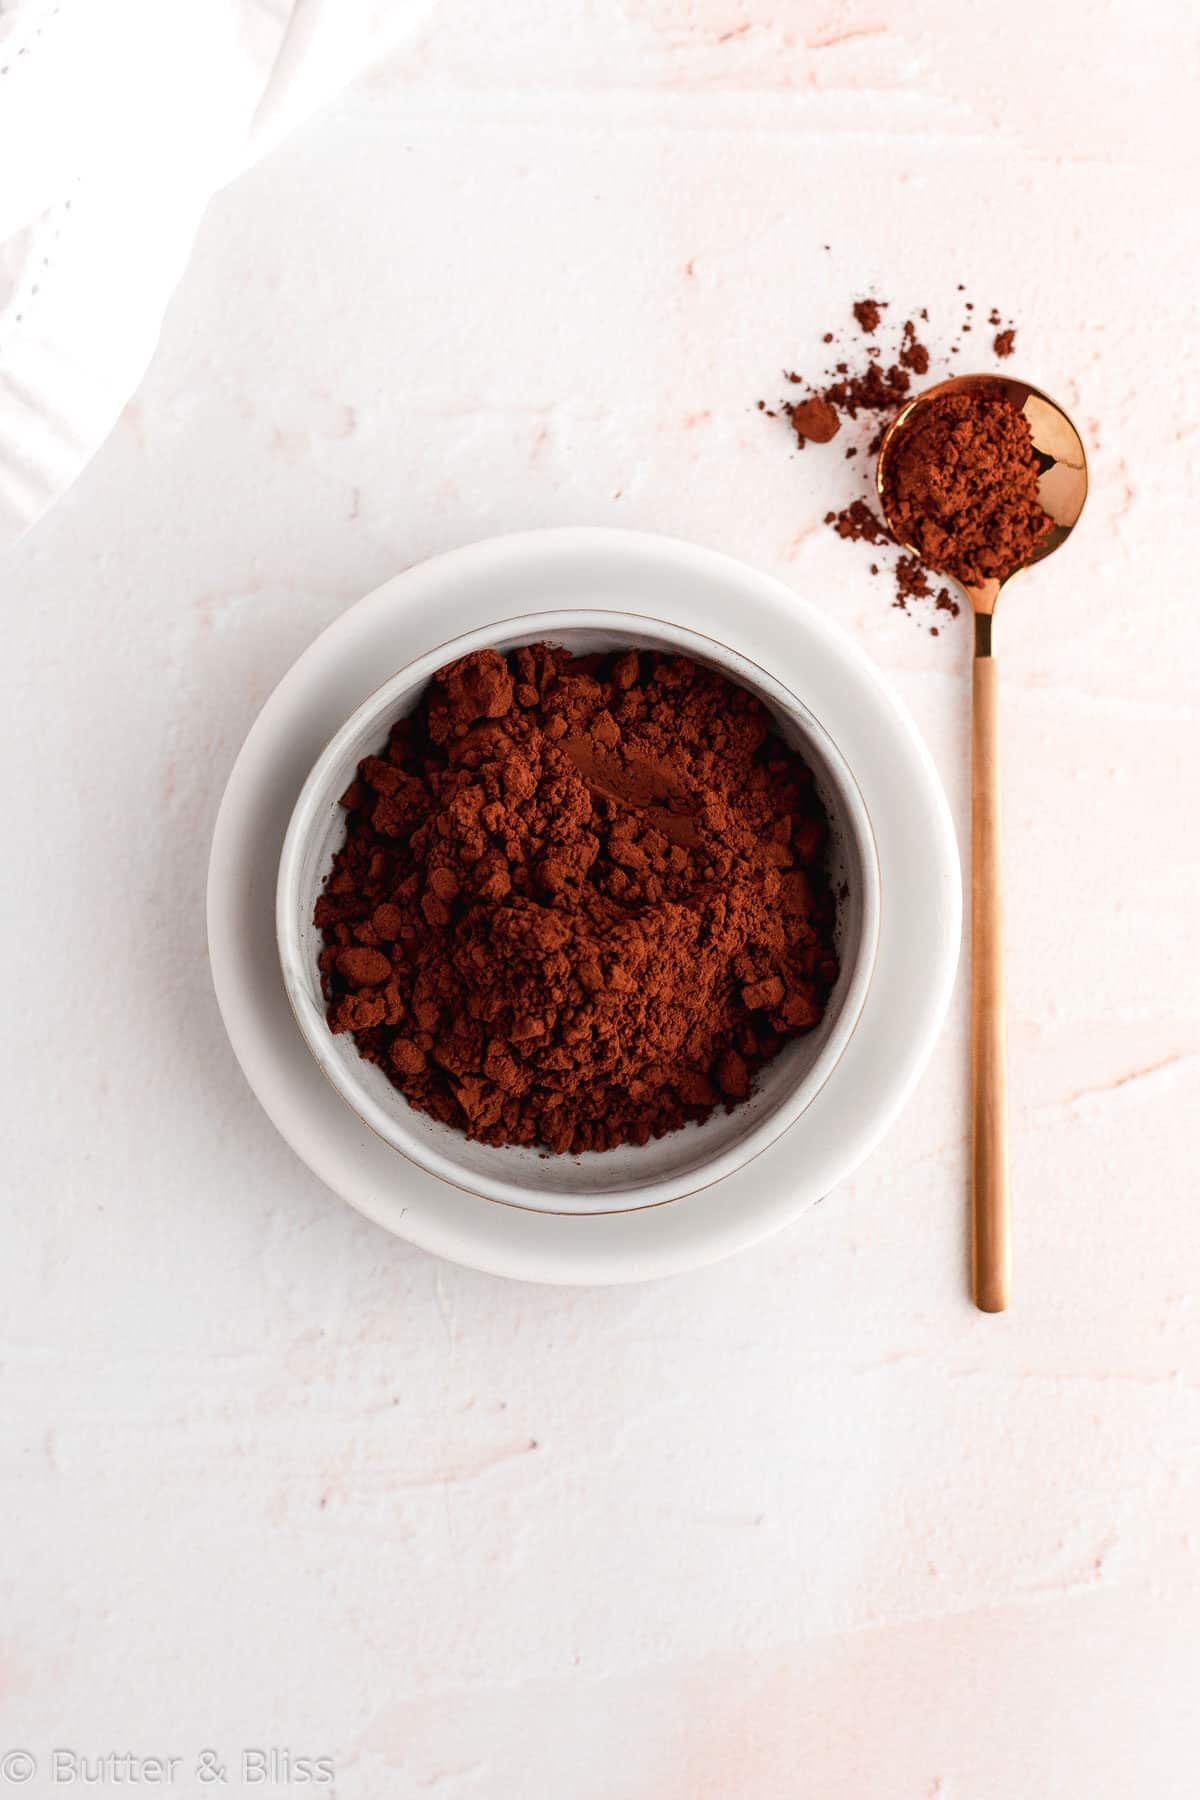 Cocoa ingredient for chocolate cobbler